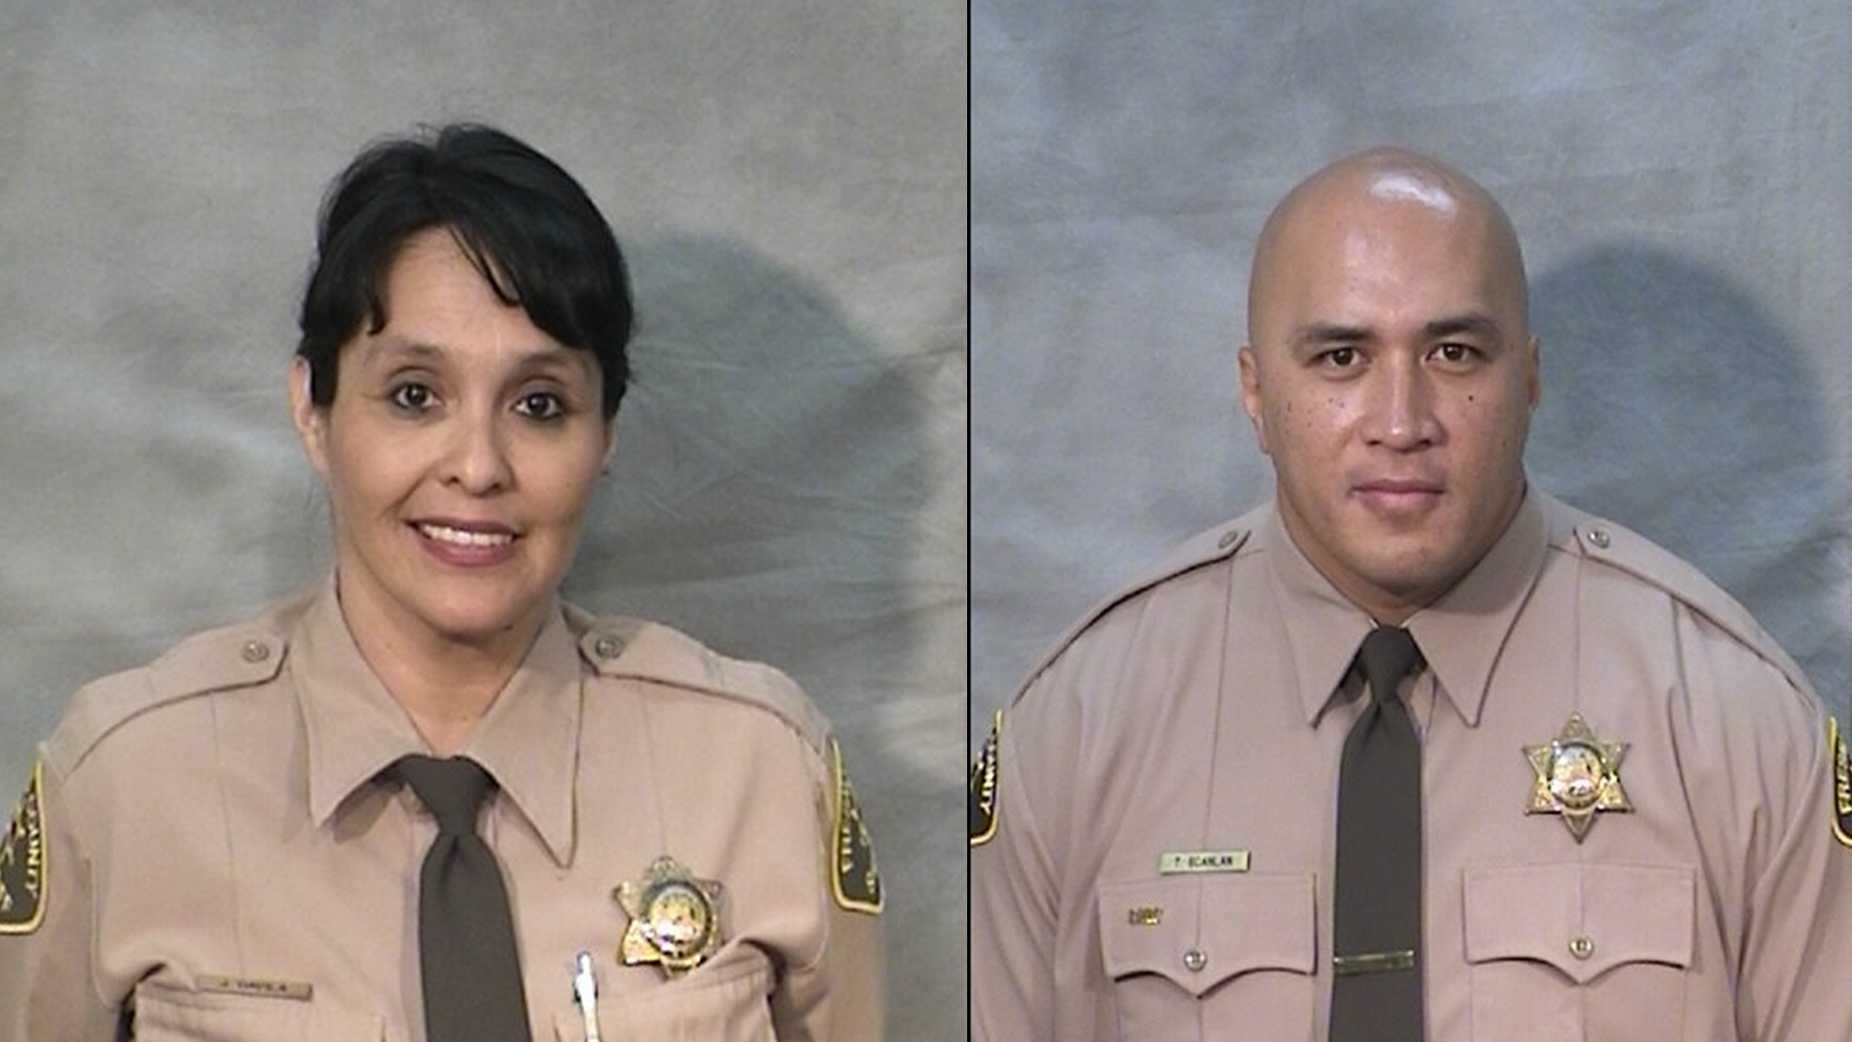 Juanita Davila (left) and Toamalama Scanlan (right) were both shot in the neck and head areas Saturday morning, officials said.